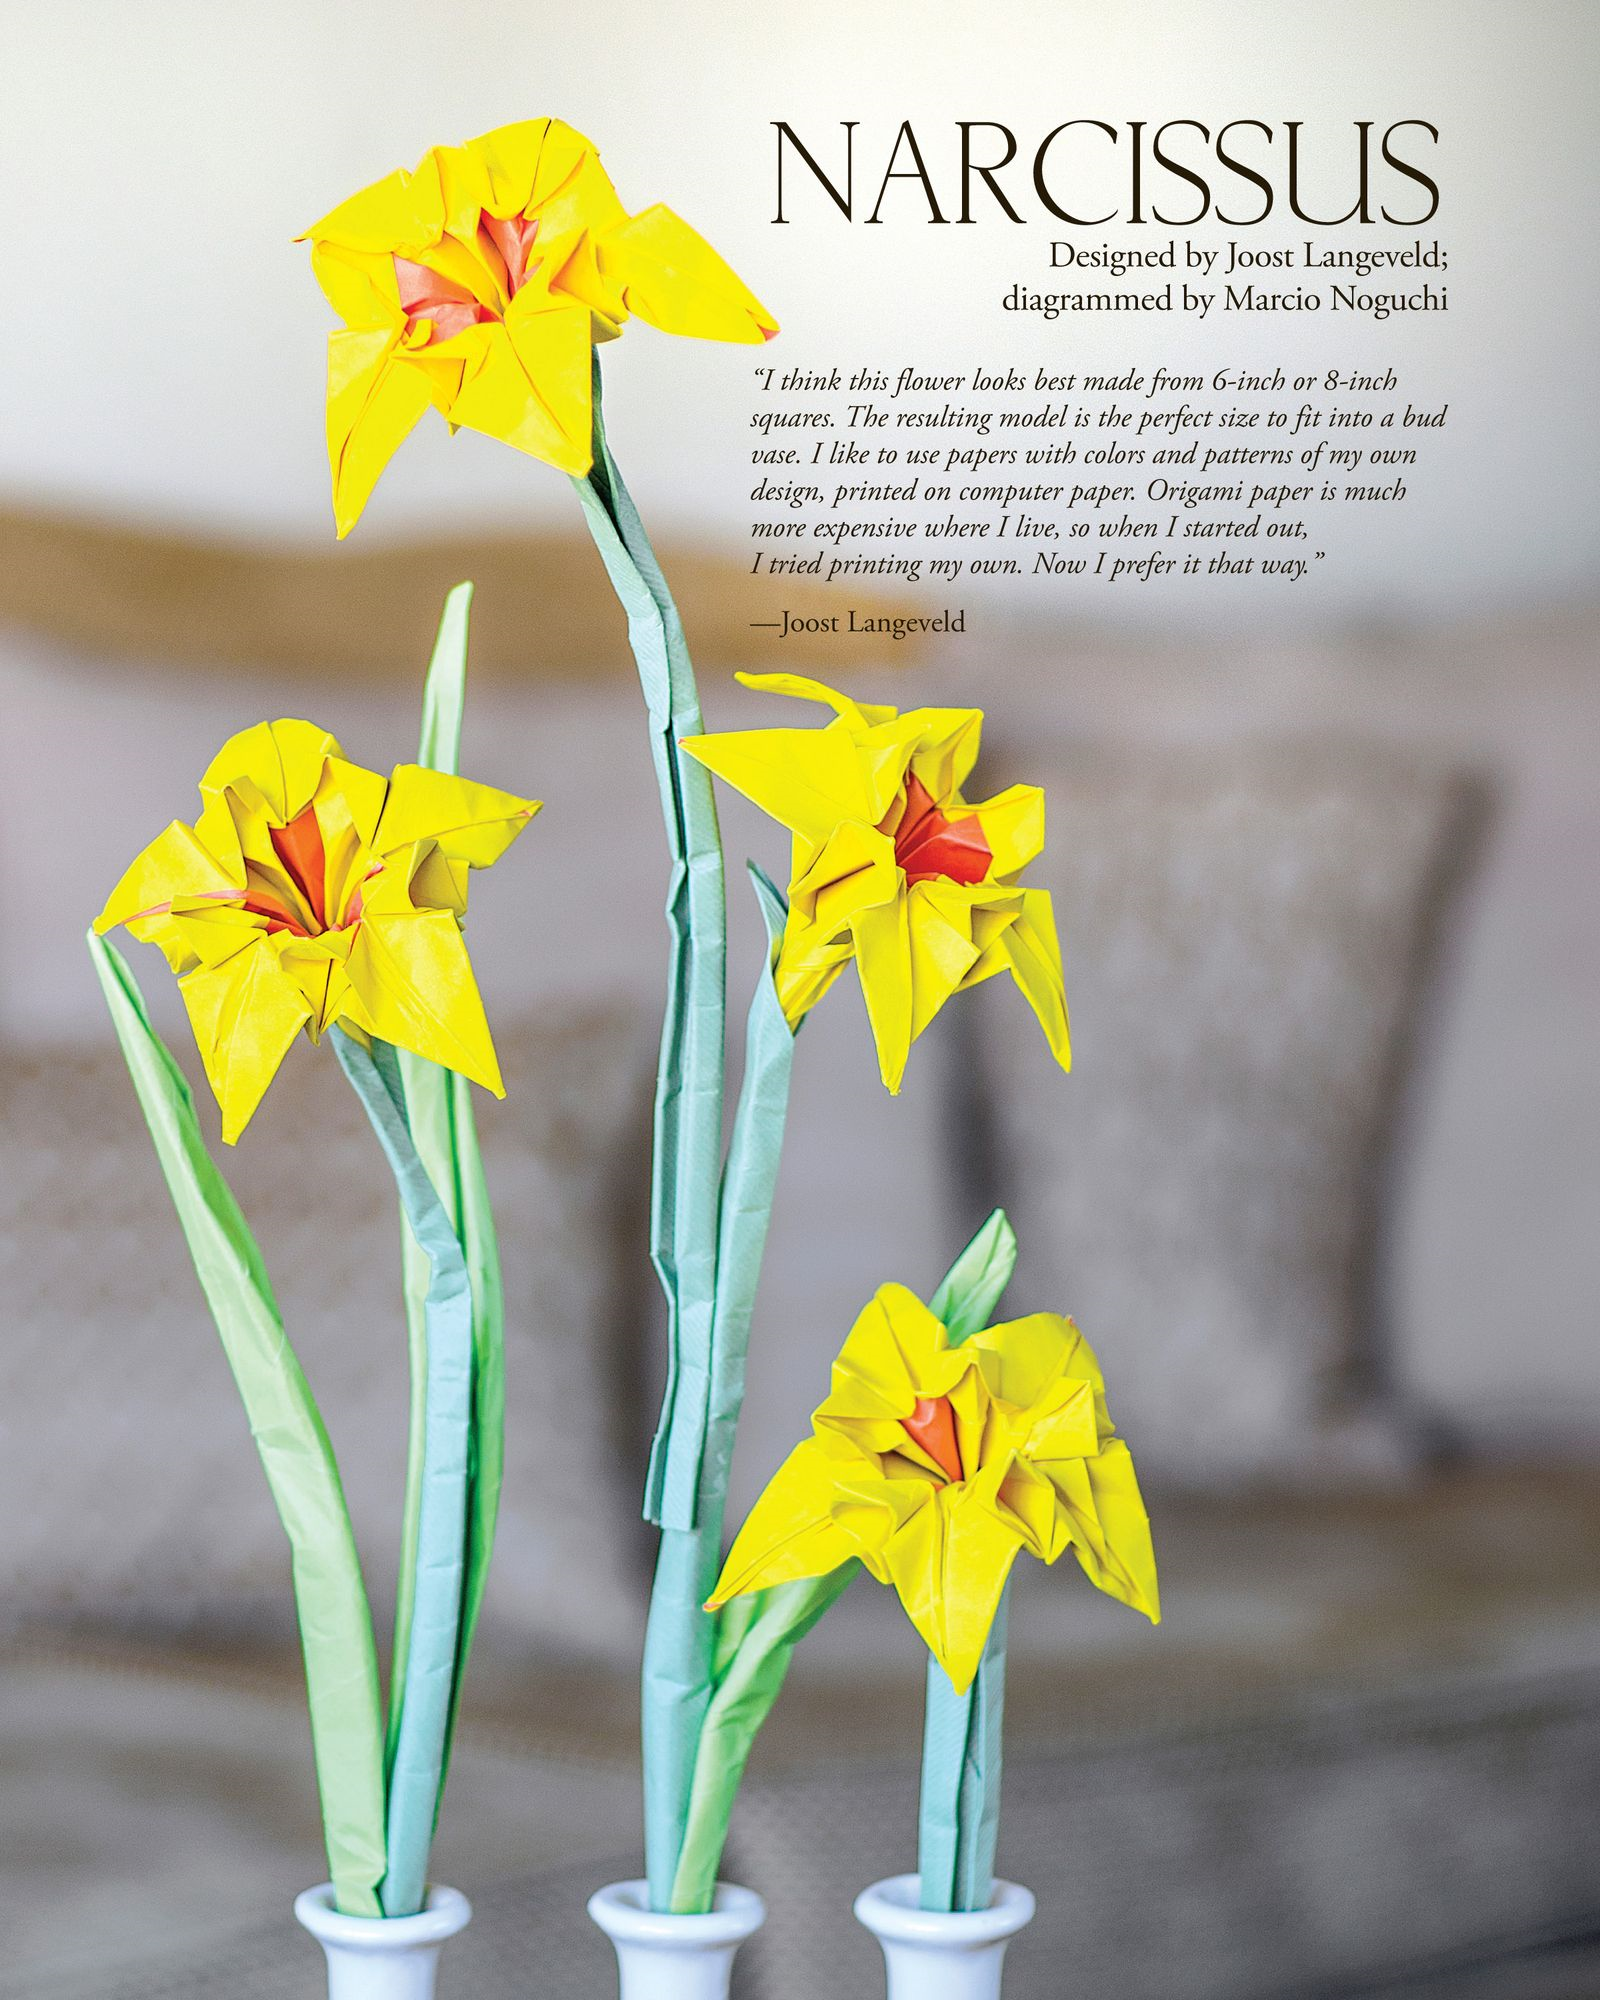 Craftside: Origami Narcissus from the book Origami Master Class Flowers